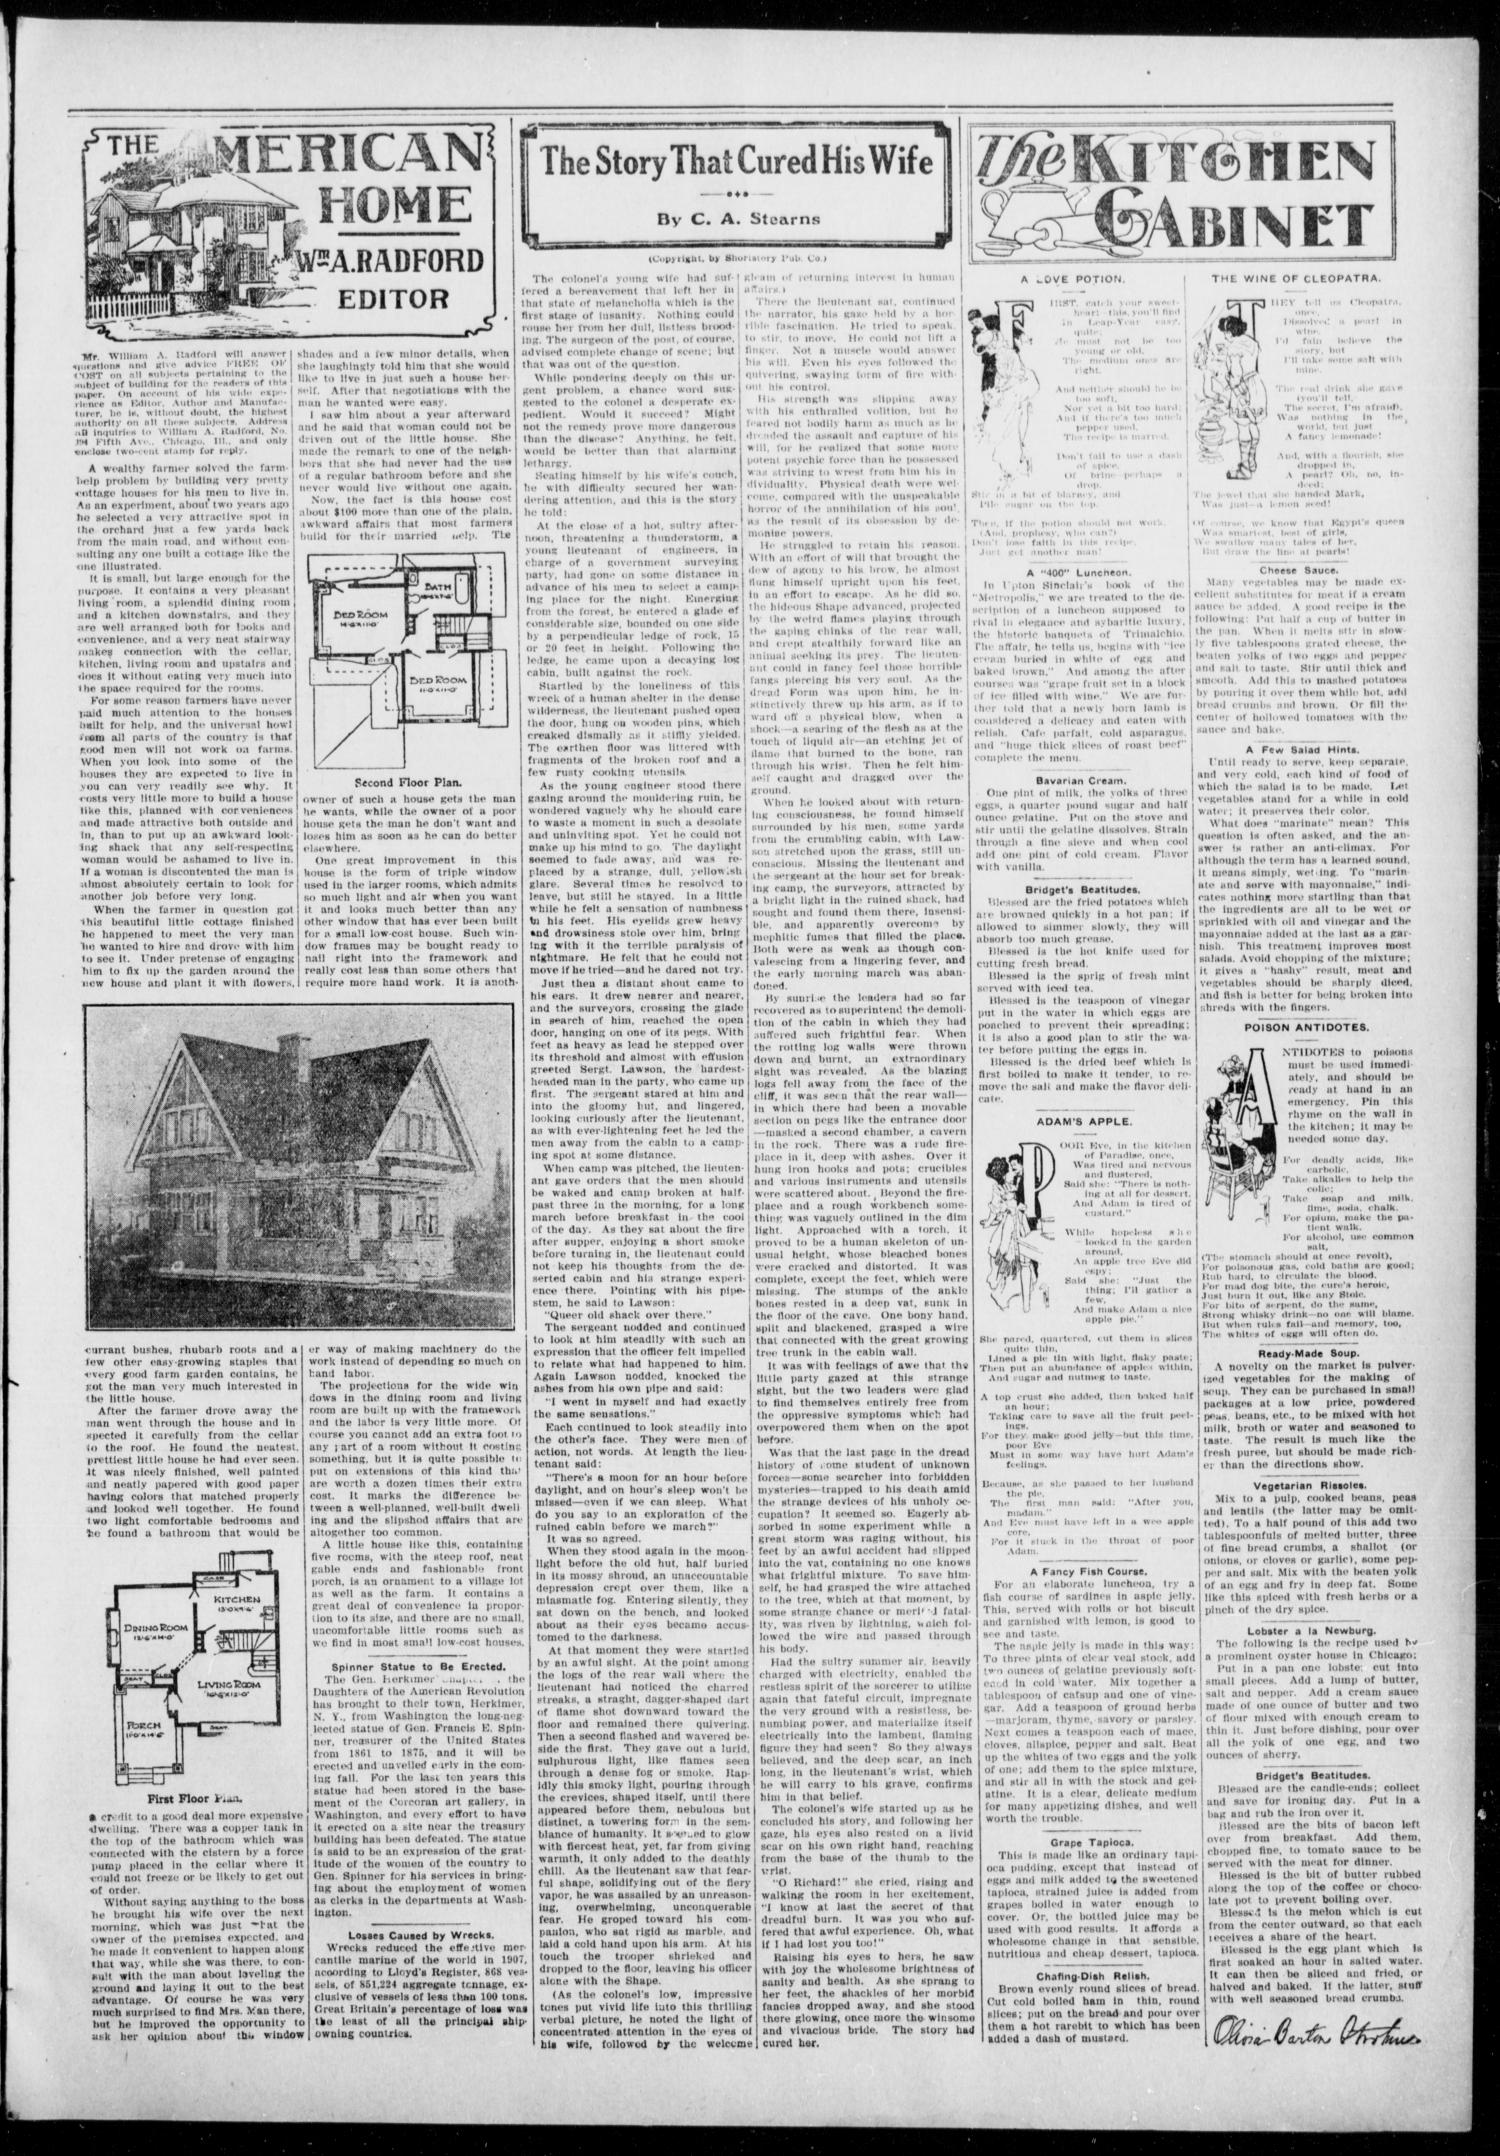 The Daily Democrat. (Anadarko, Okla.), Vol. 7, No. 252, Ed. 1, Tuesday, November 17, 1908                                                                                                      [Sequence #]: 3 of 4